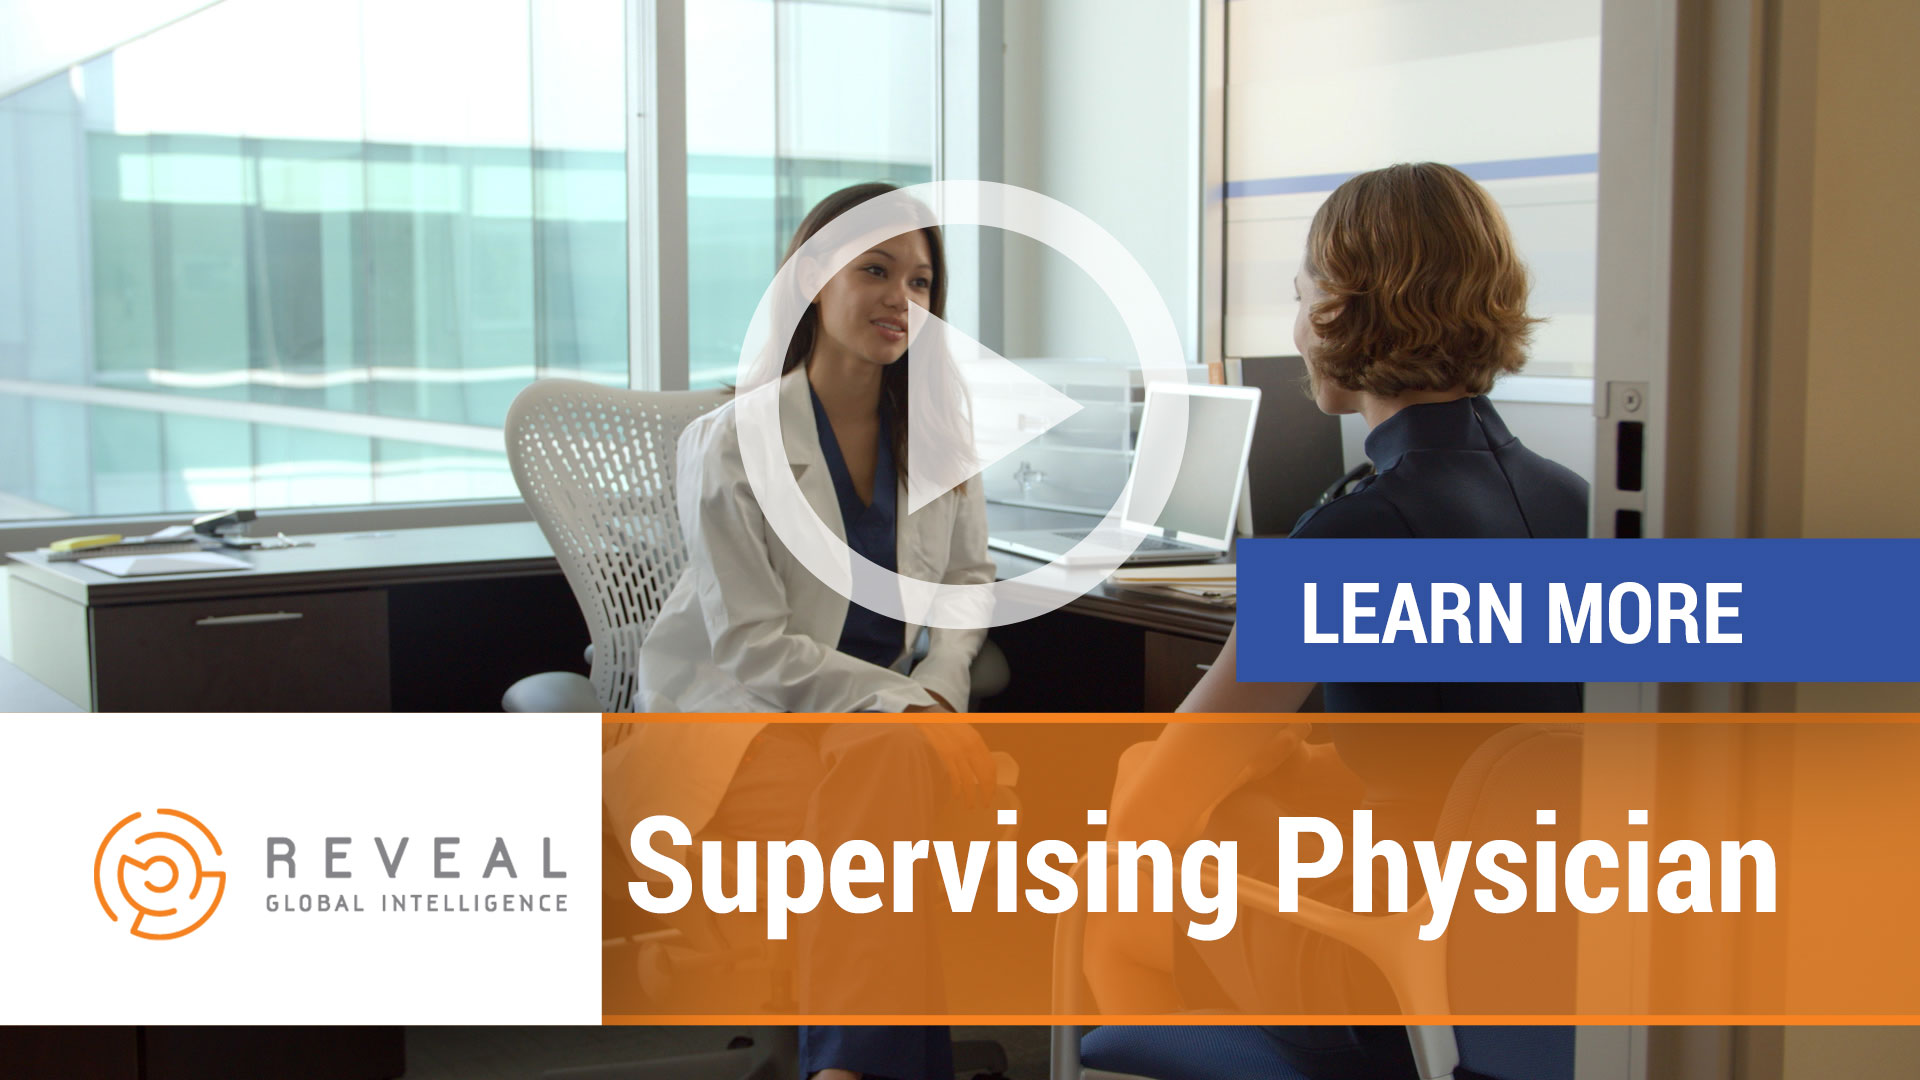 Watch our careers video for available job opening Supervising Physician in Florida and Indiana, USA